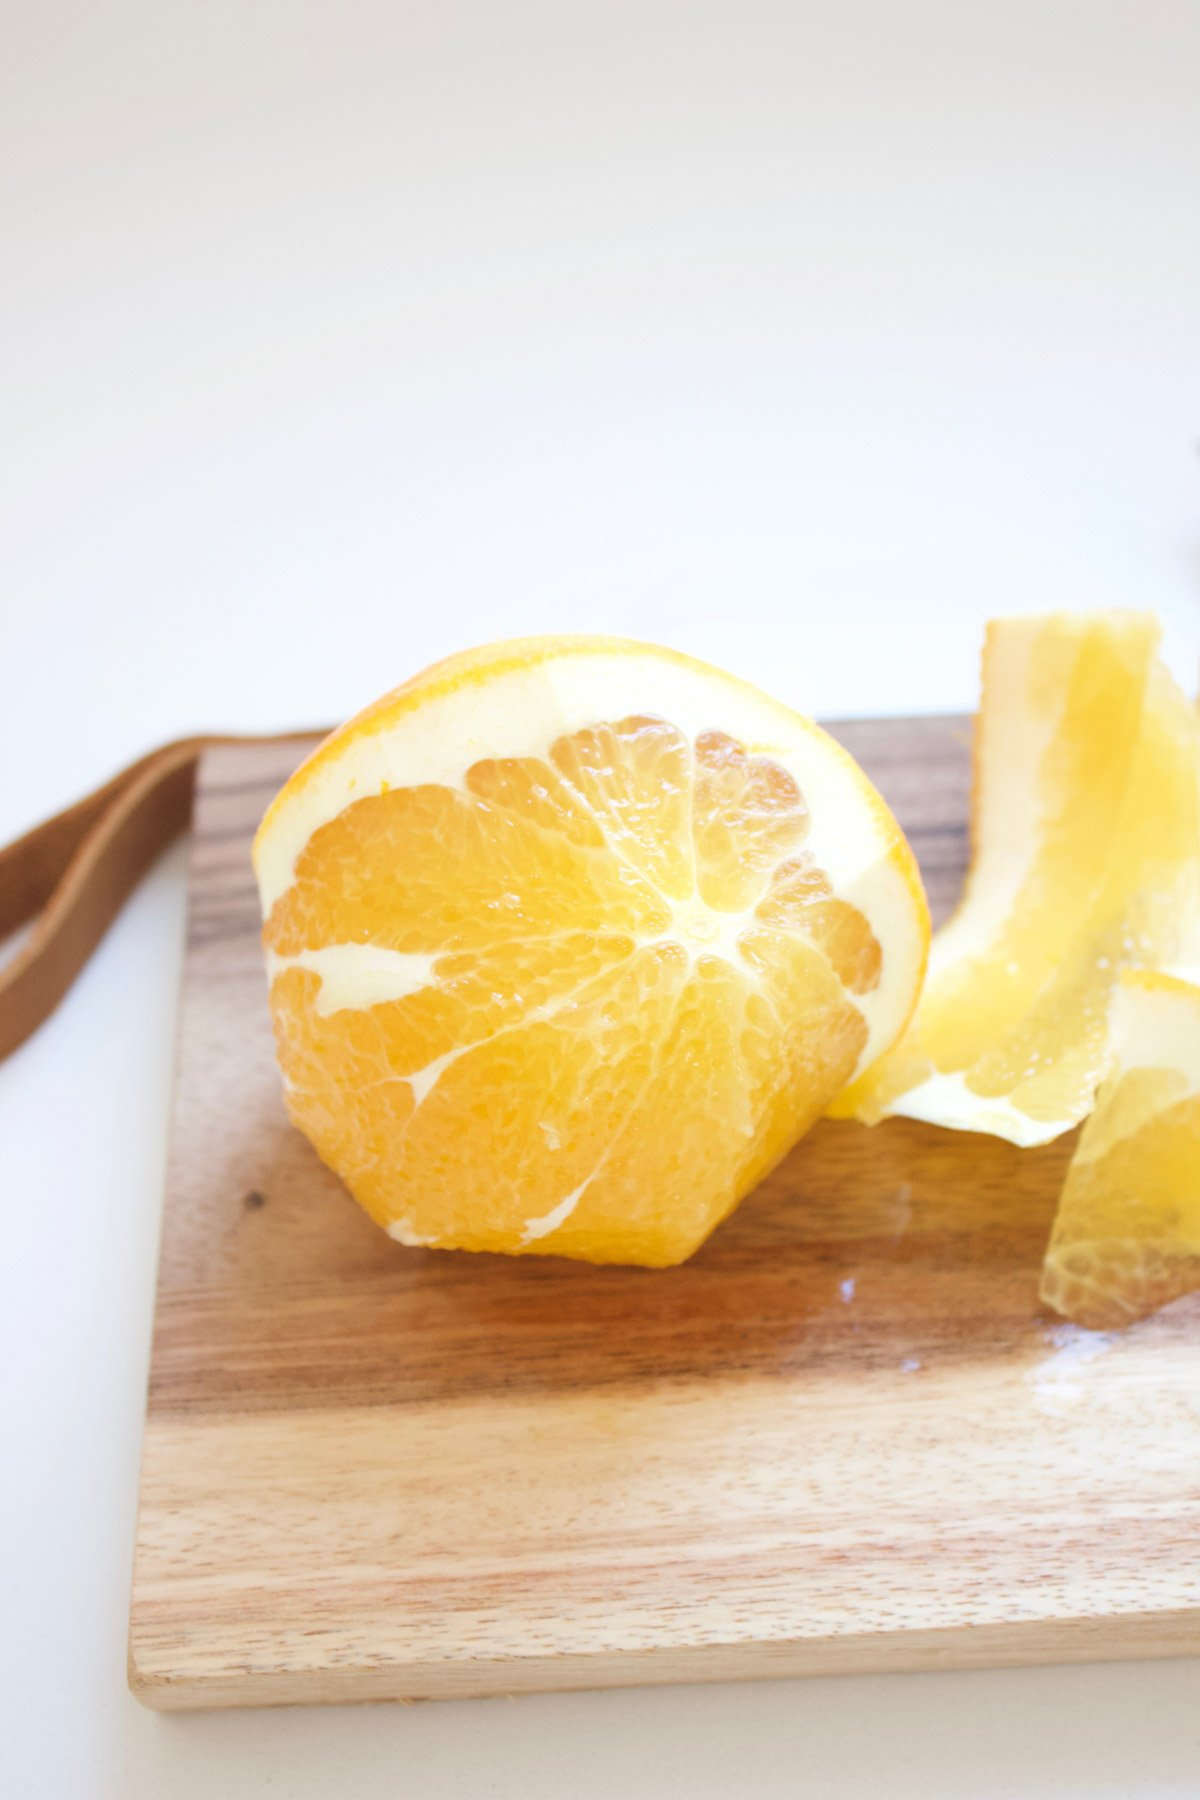 Peeled navel orange on a cutting board.